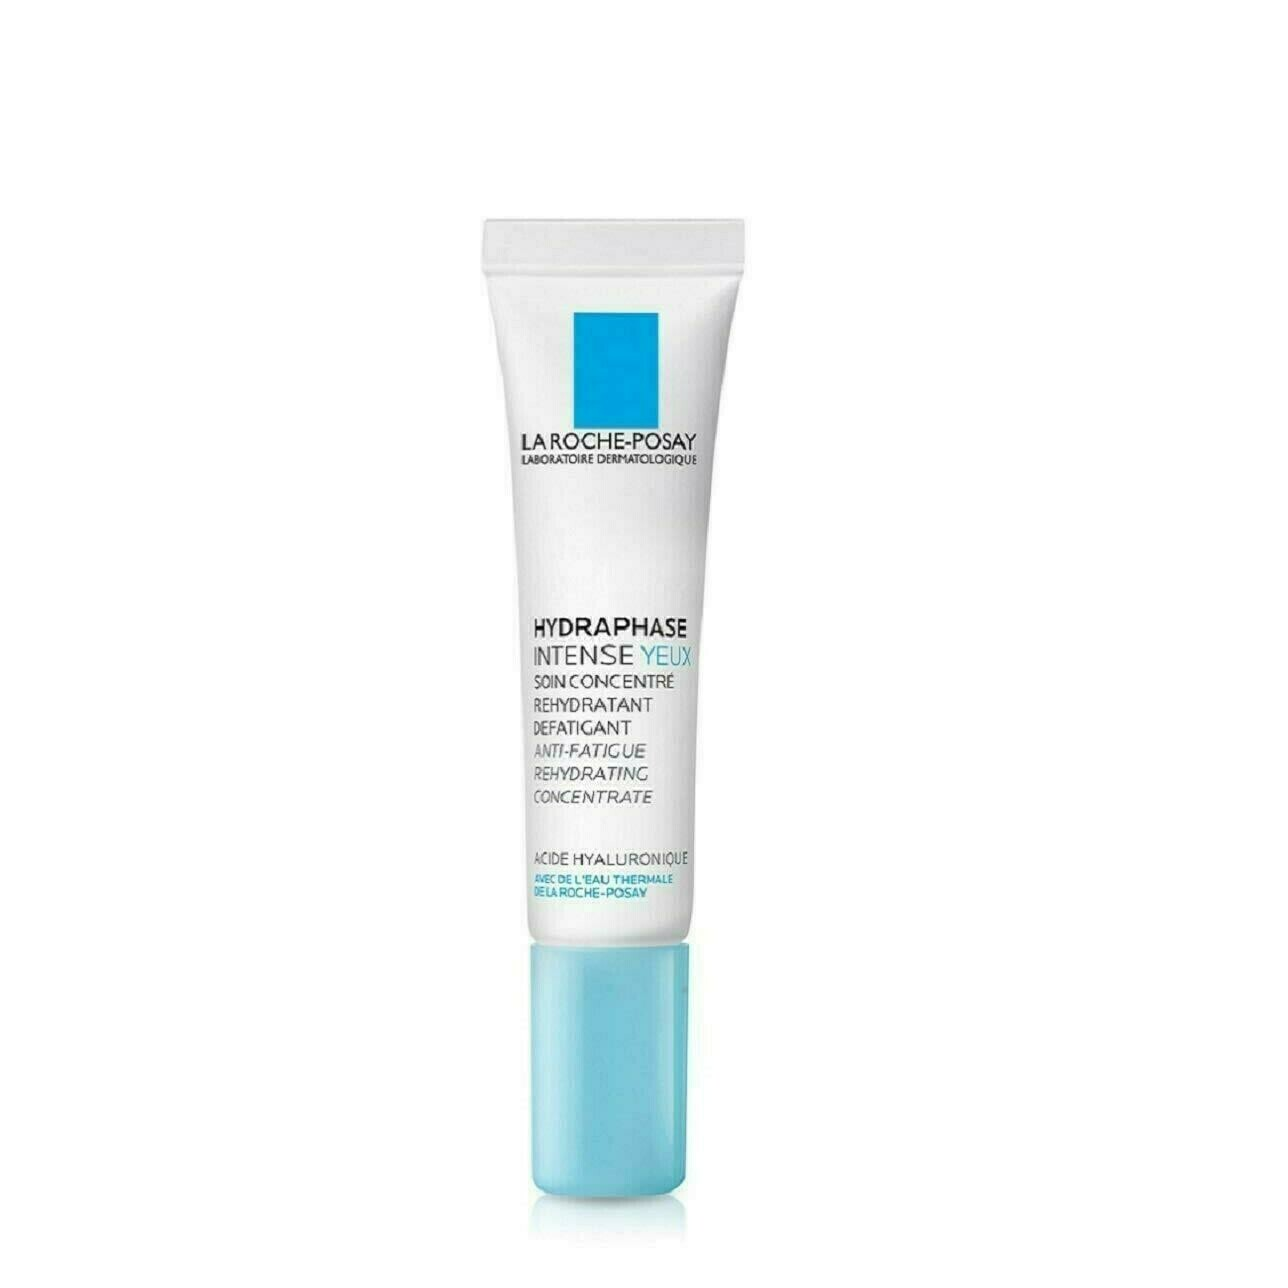 HYDRAPHASE YEUX EYES ANTIBOLSAS LA ROCHE POSAY 15 ML